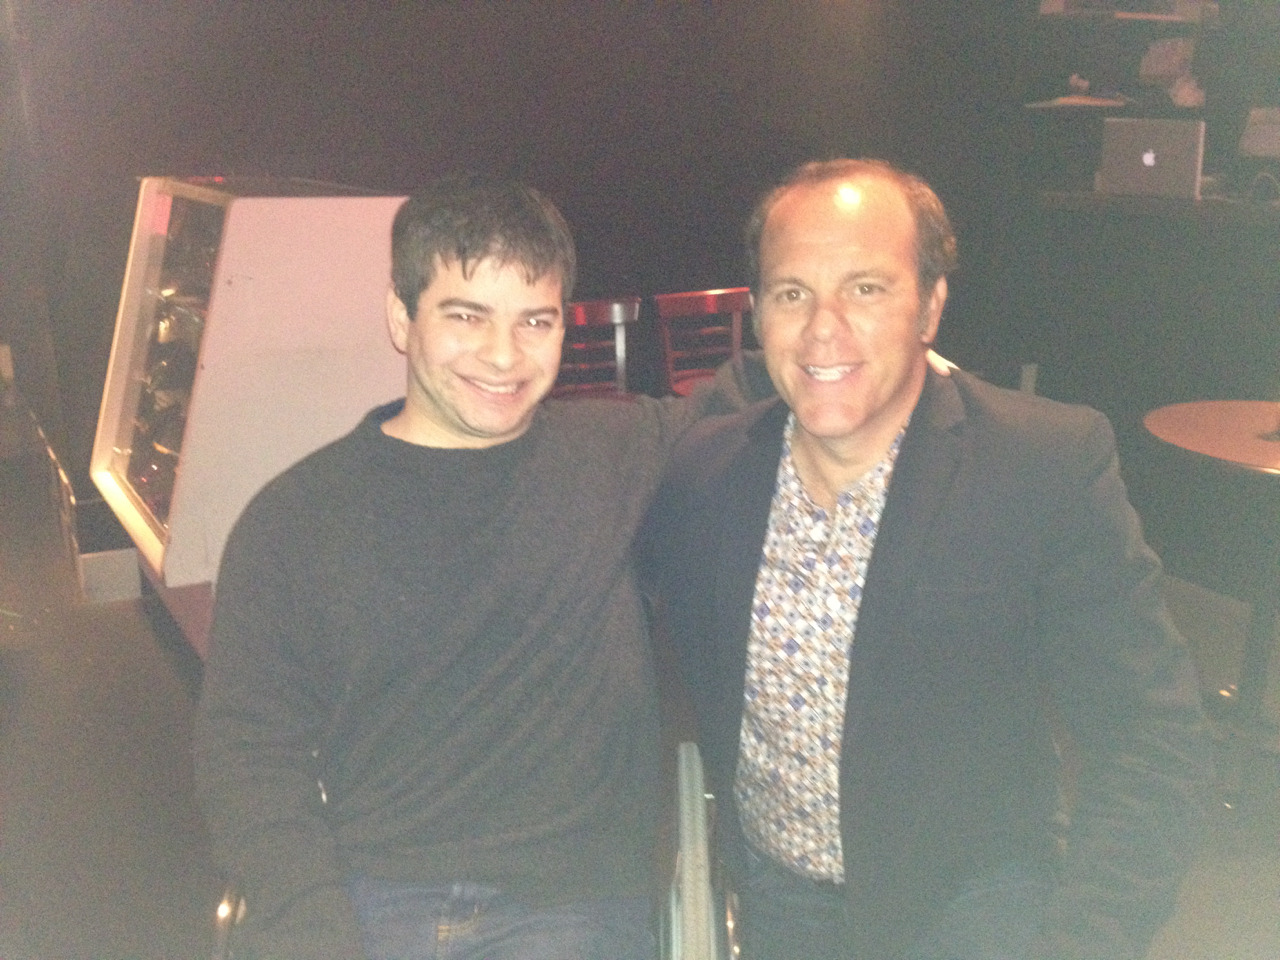 Hangin' with comedian Tom Papa at the D.C. Improv.